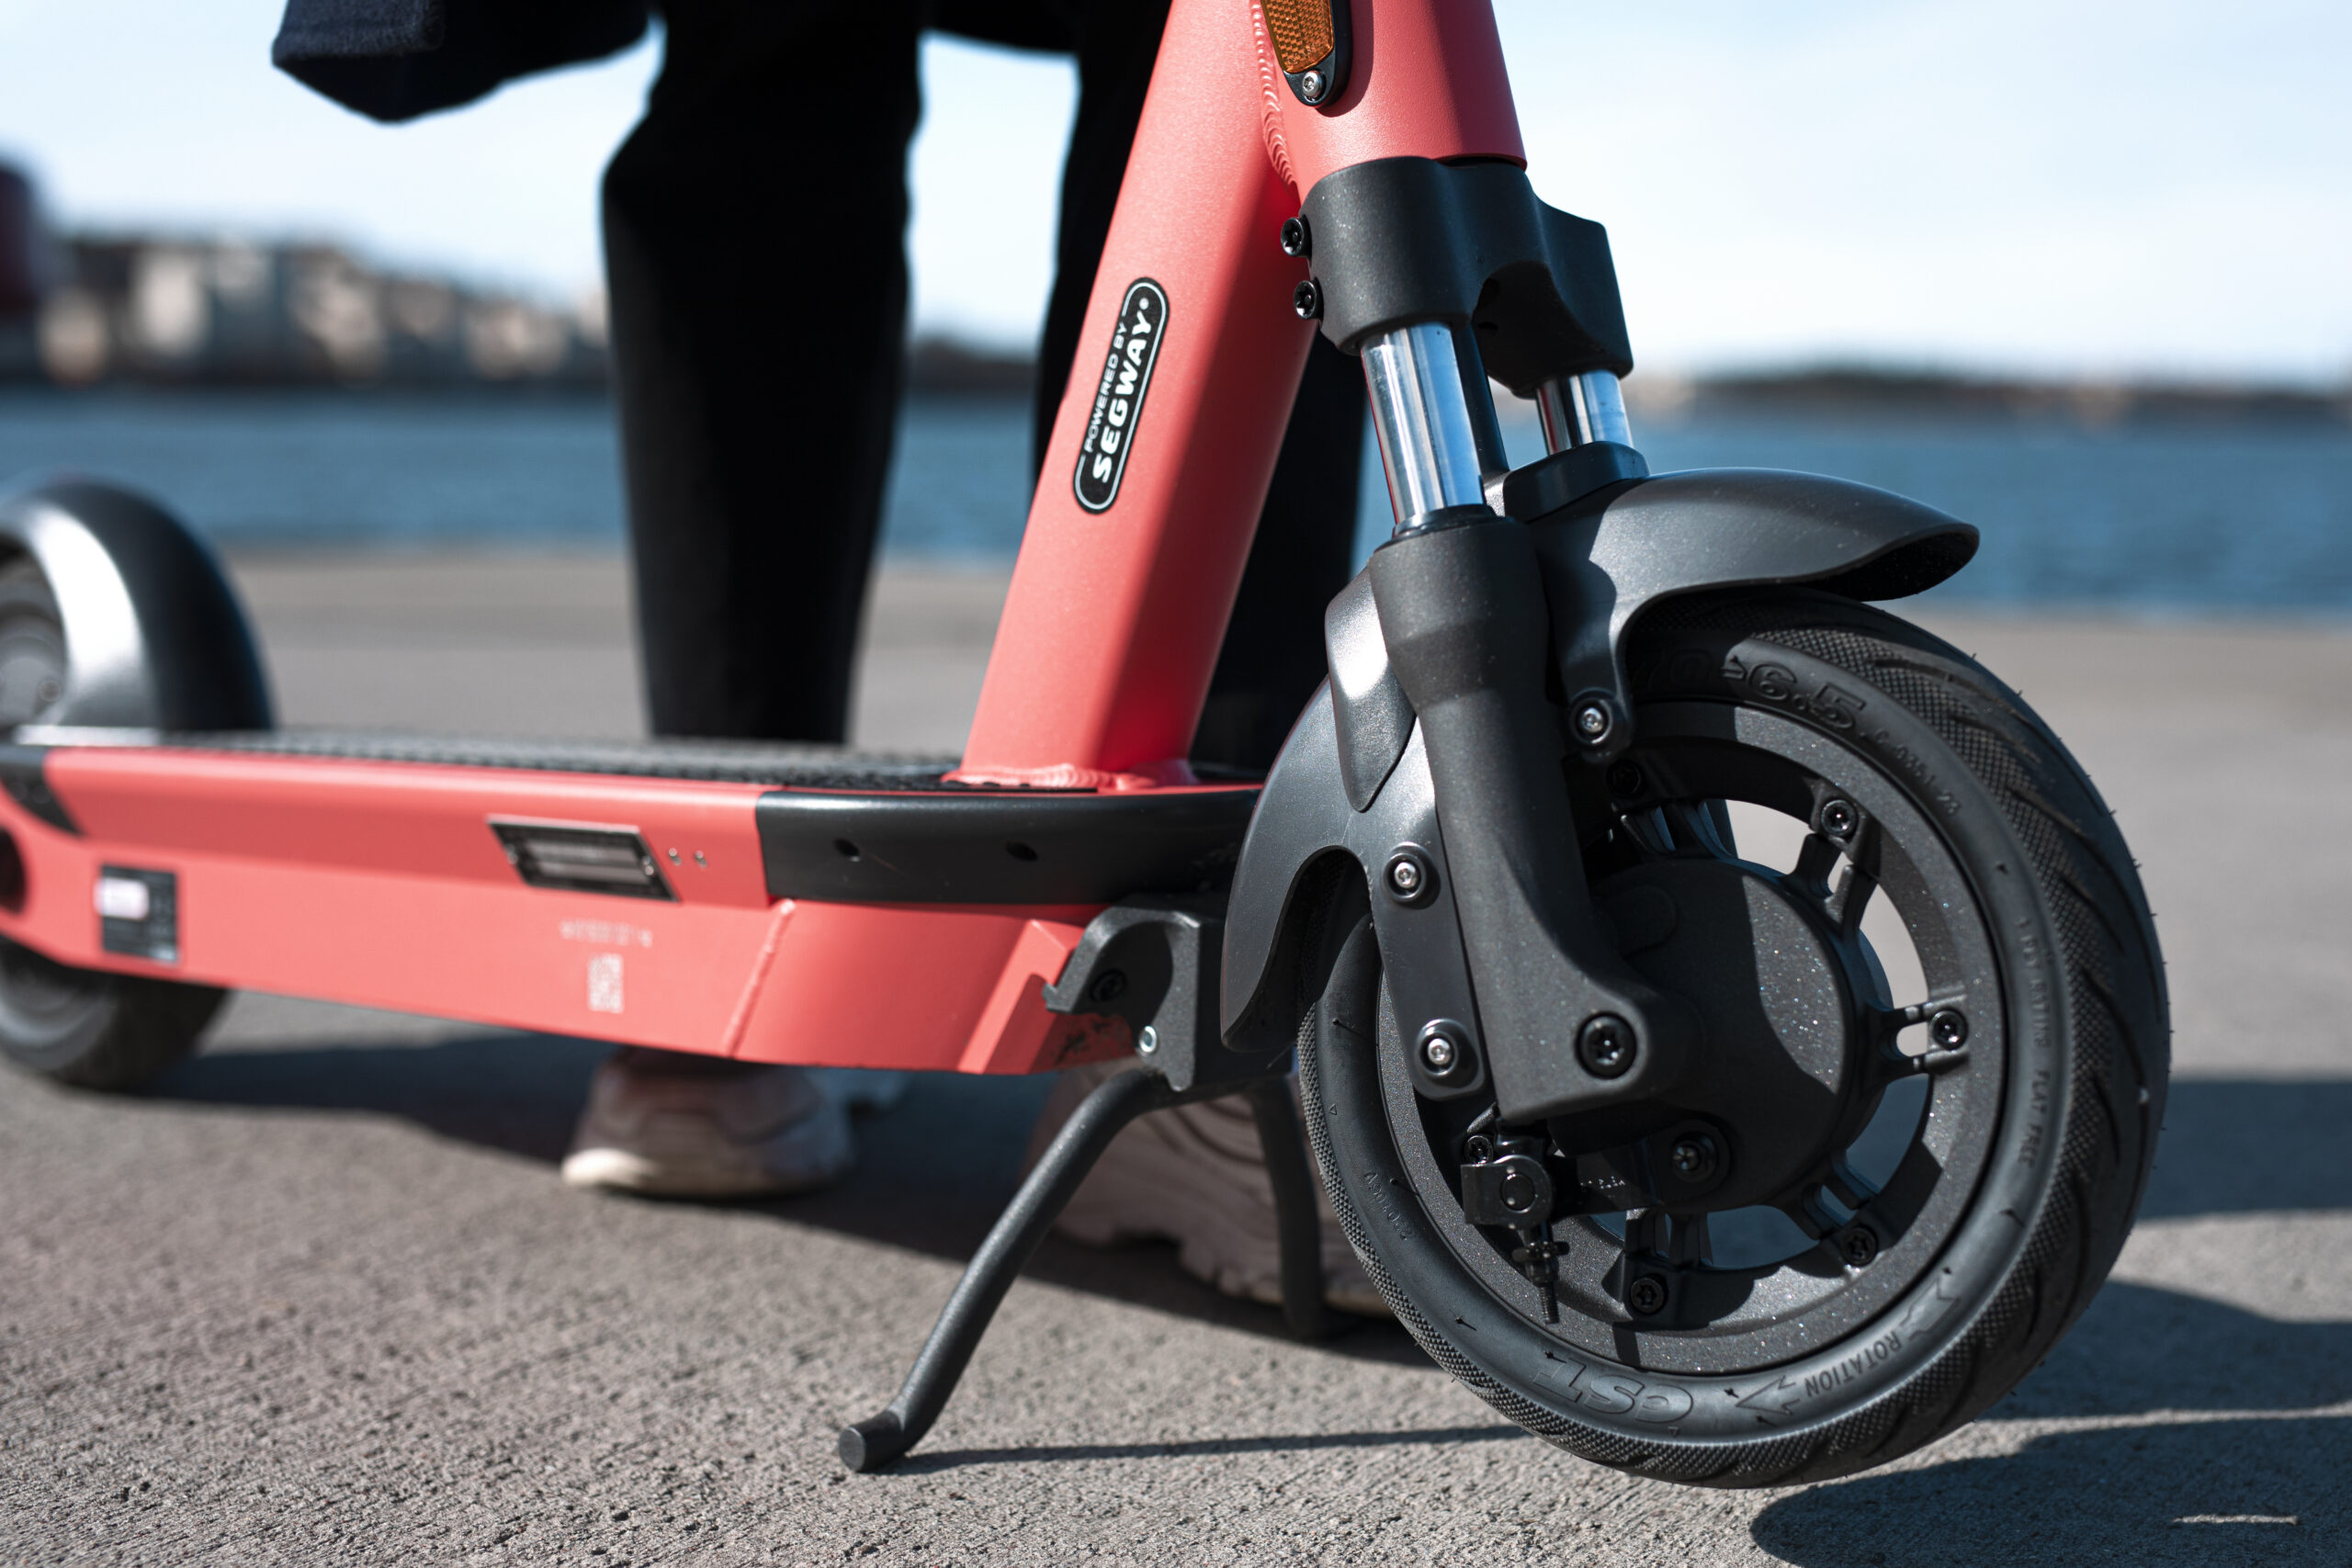 E-scooter startup Voi scoops $160m to fund European expansion